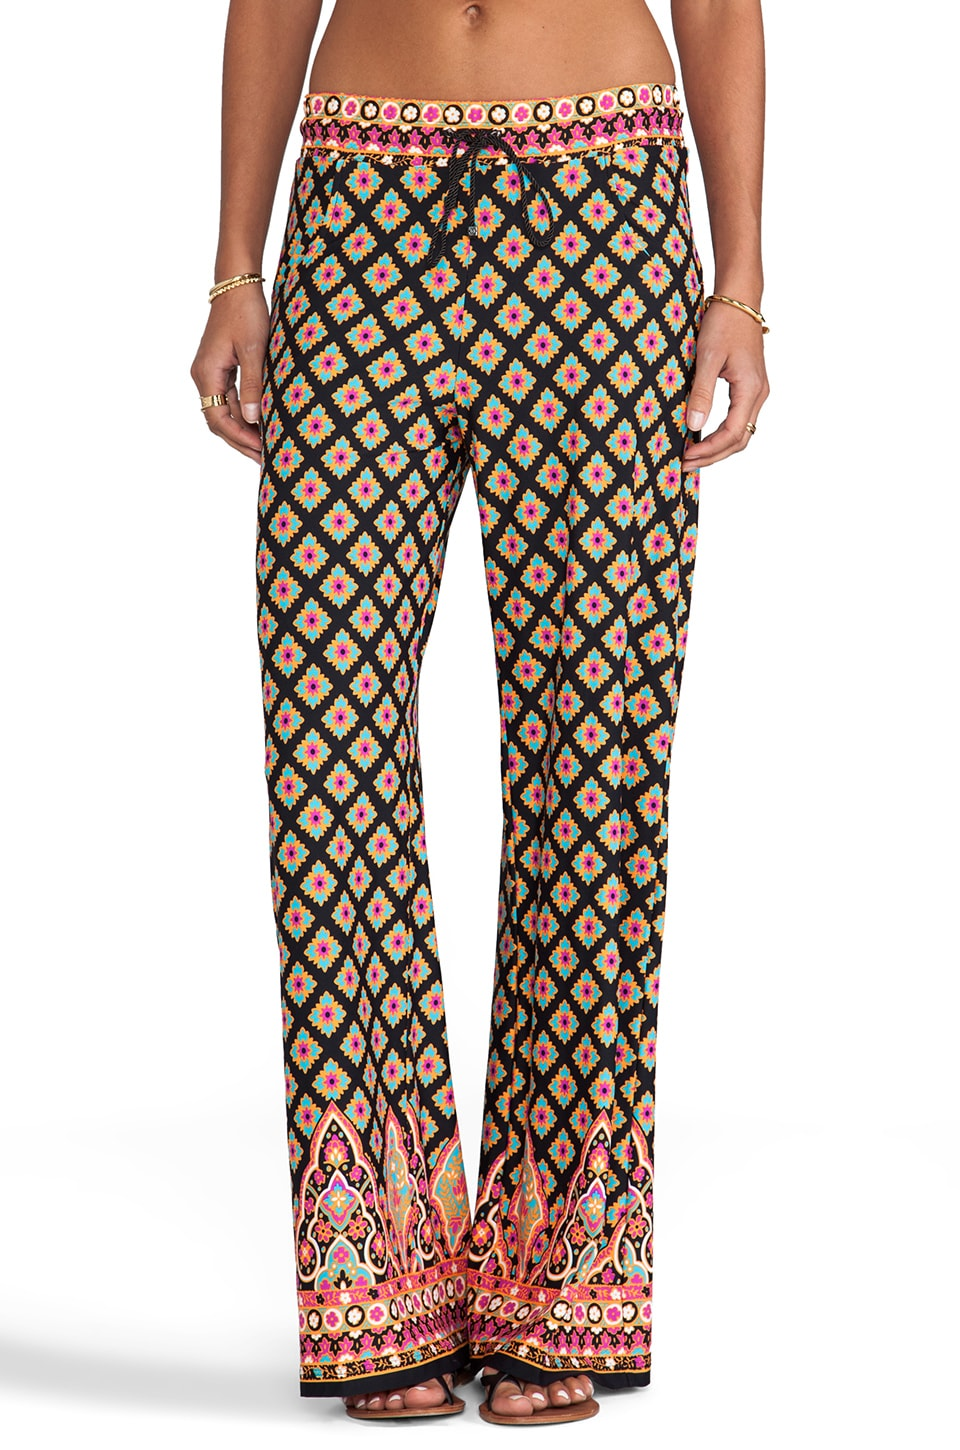 Nanette Lepore Moroccan Medallion Beach Pant in Black